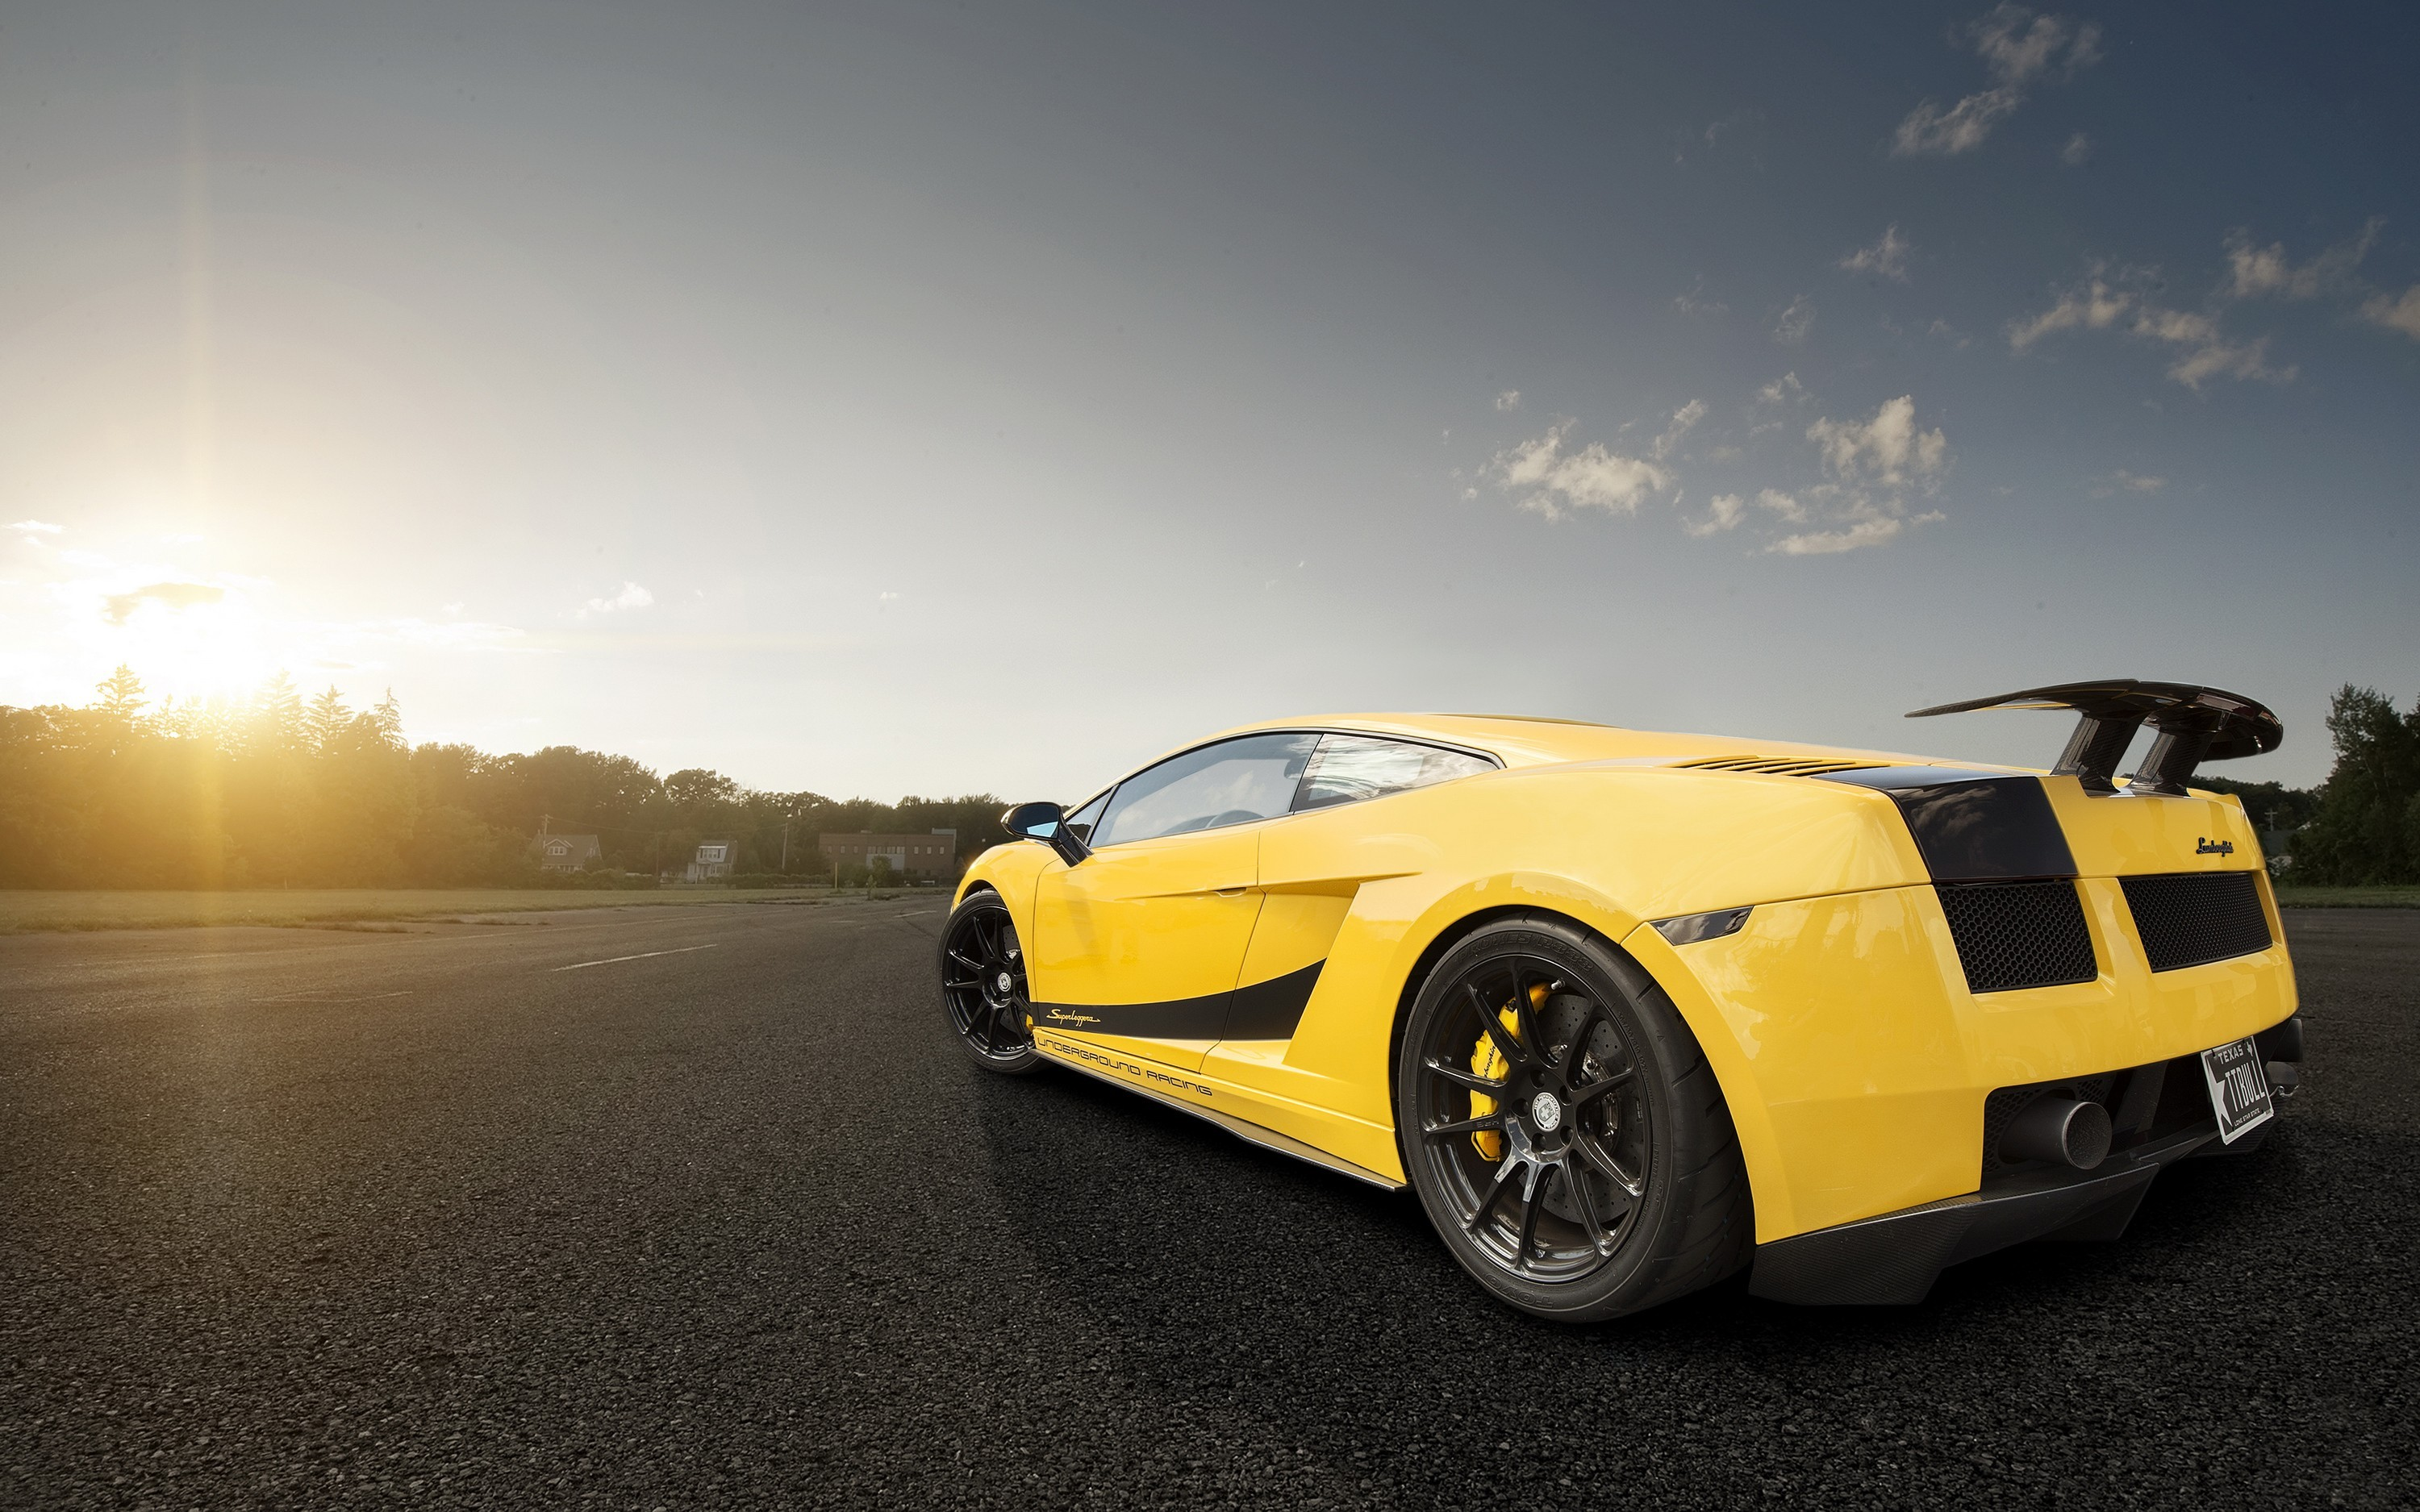 Cars Lamborghini Gallardo Lp570 4 Superleggera Wallpaper